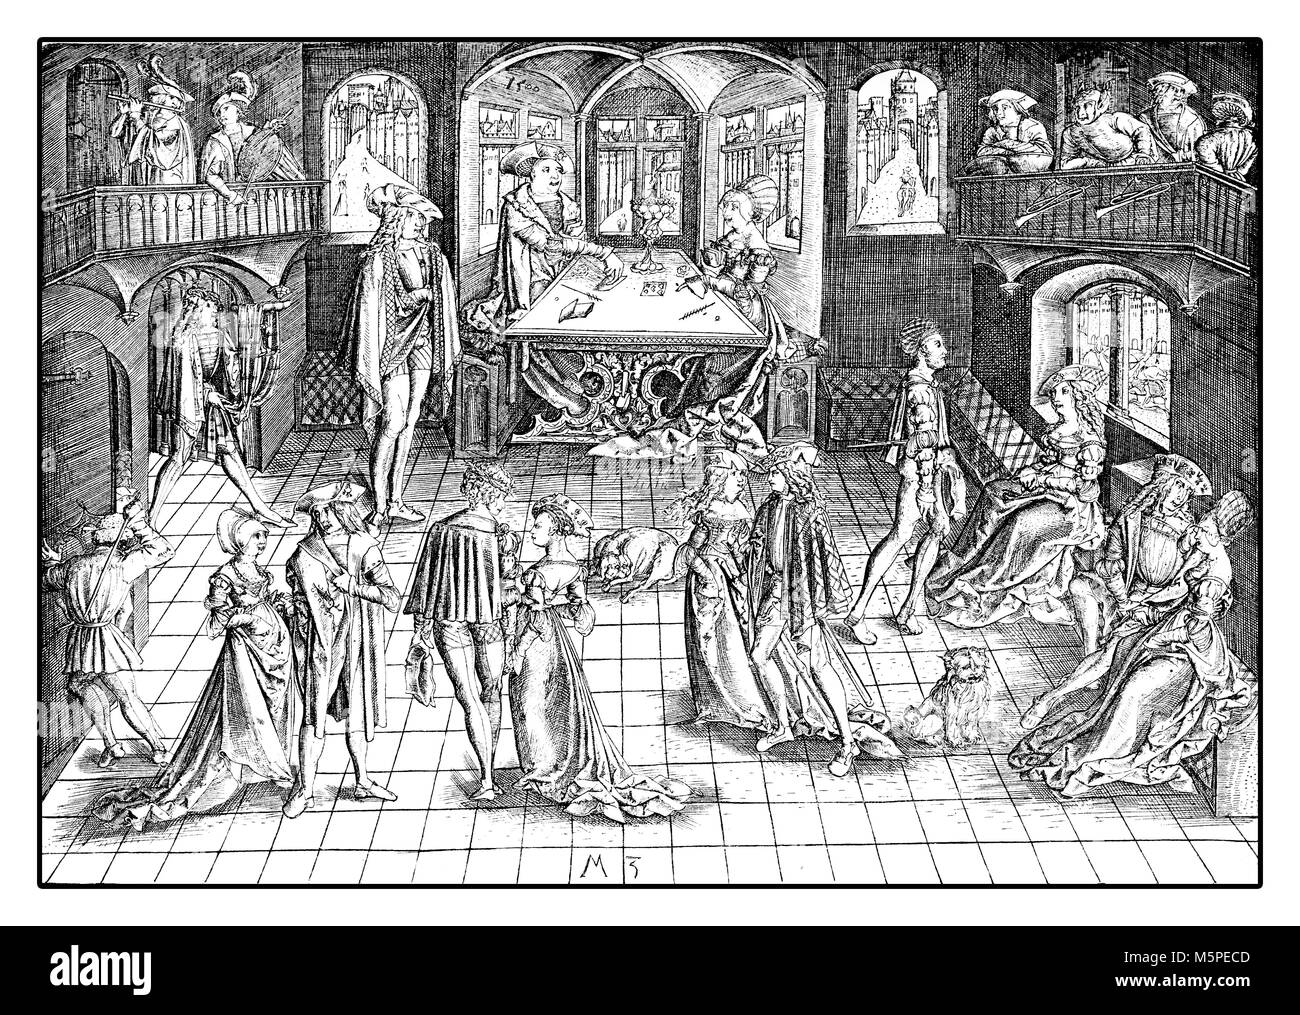 Ball at the royal court of Albrecht IV of Bavaria, reproduction of an engraving of Matthaeus Zafinger, year 1500 - Stock Image